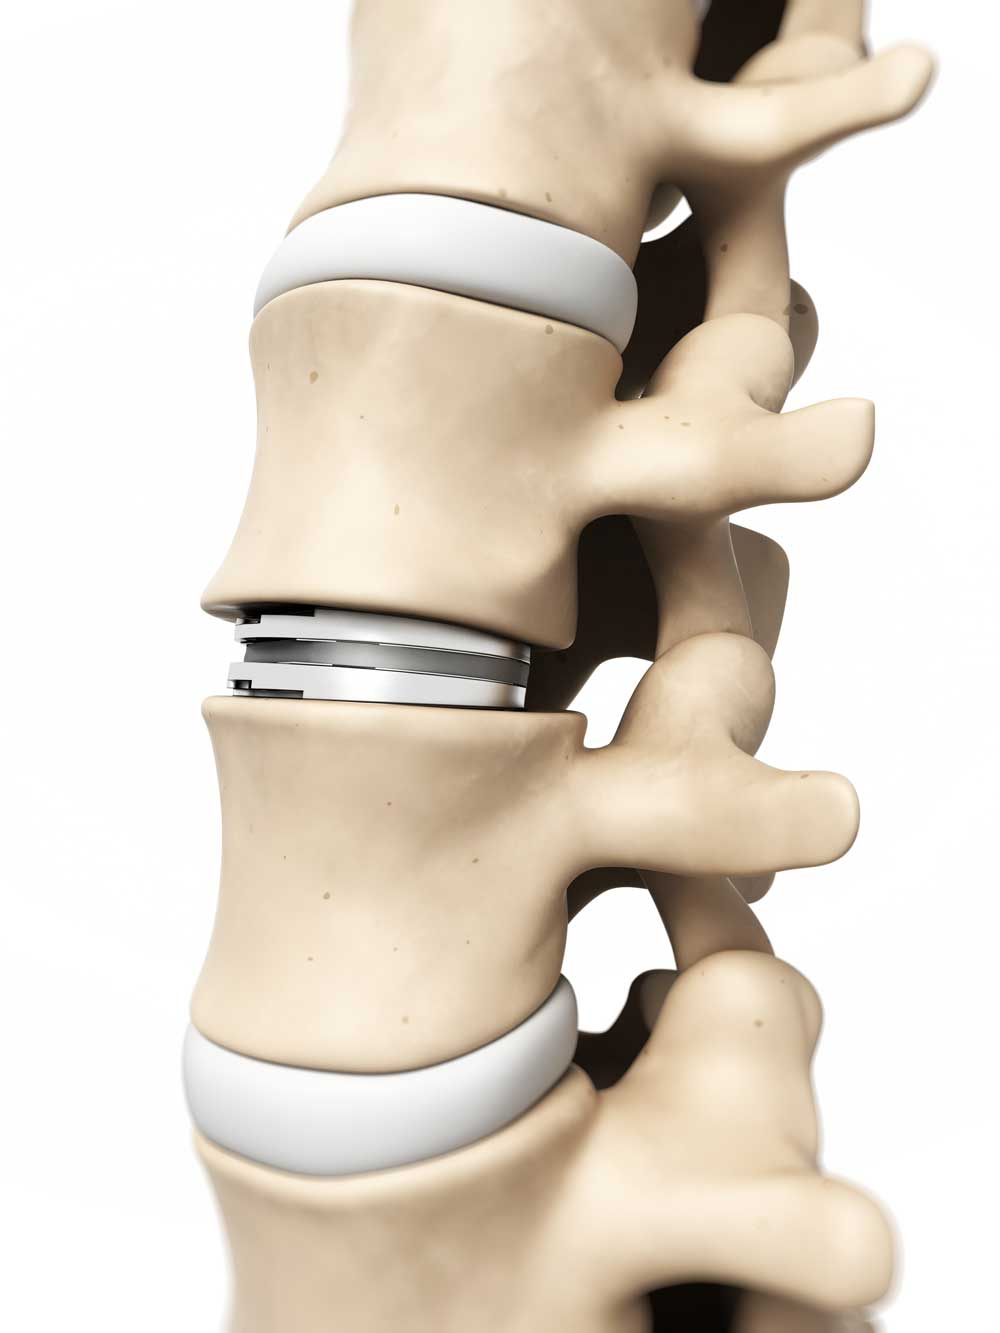 Artificial disc replacement in the neck